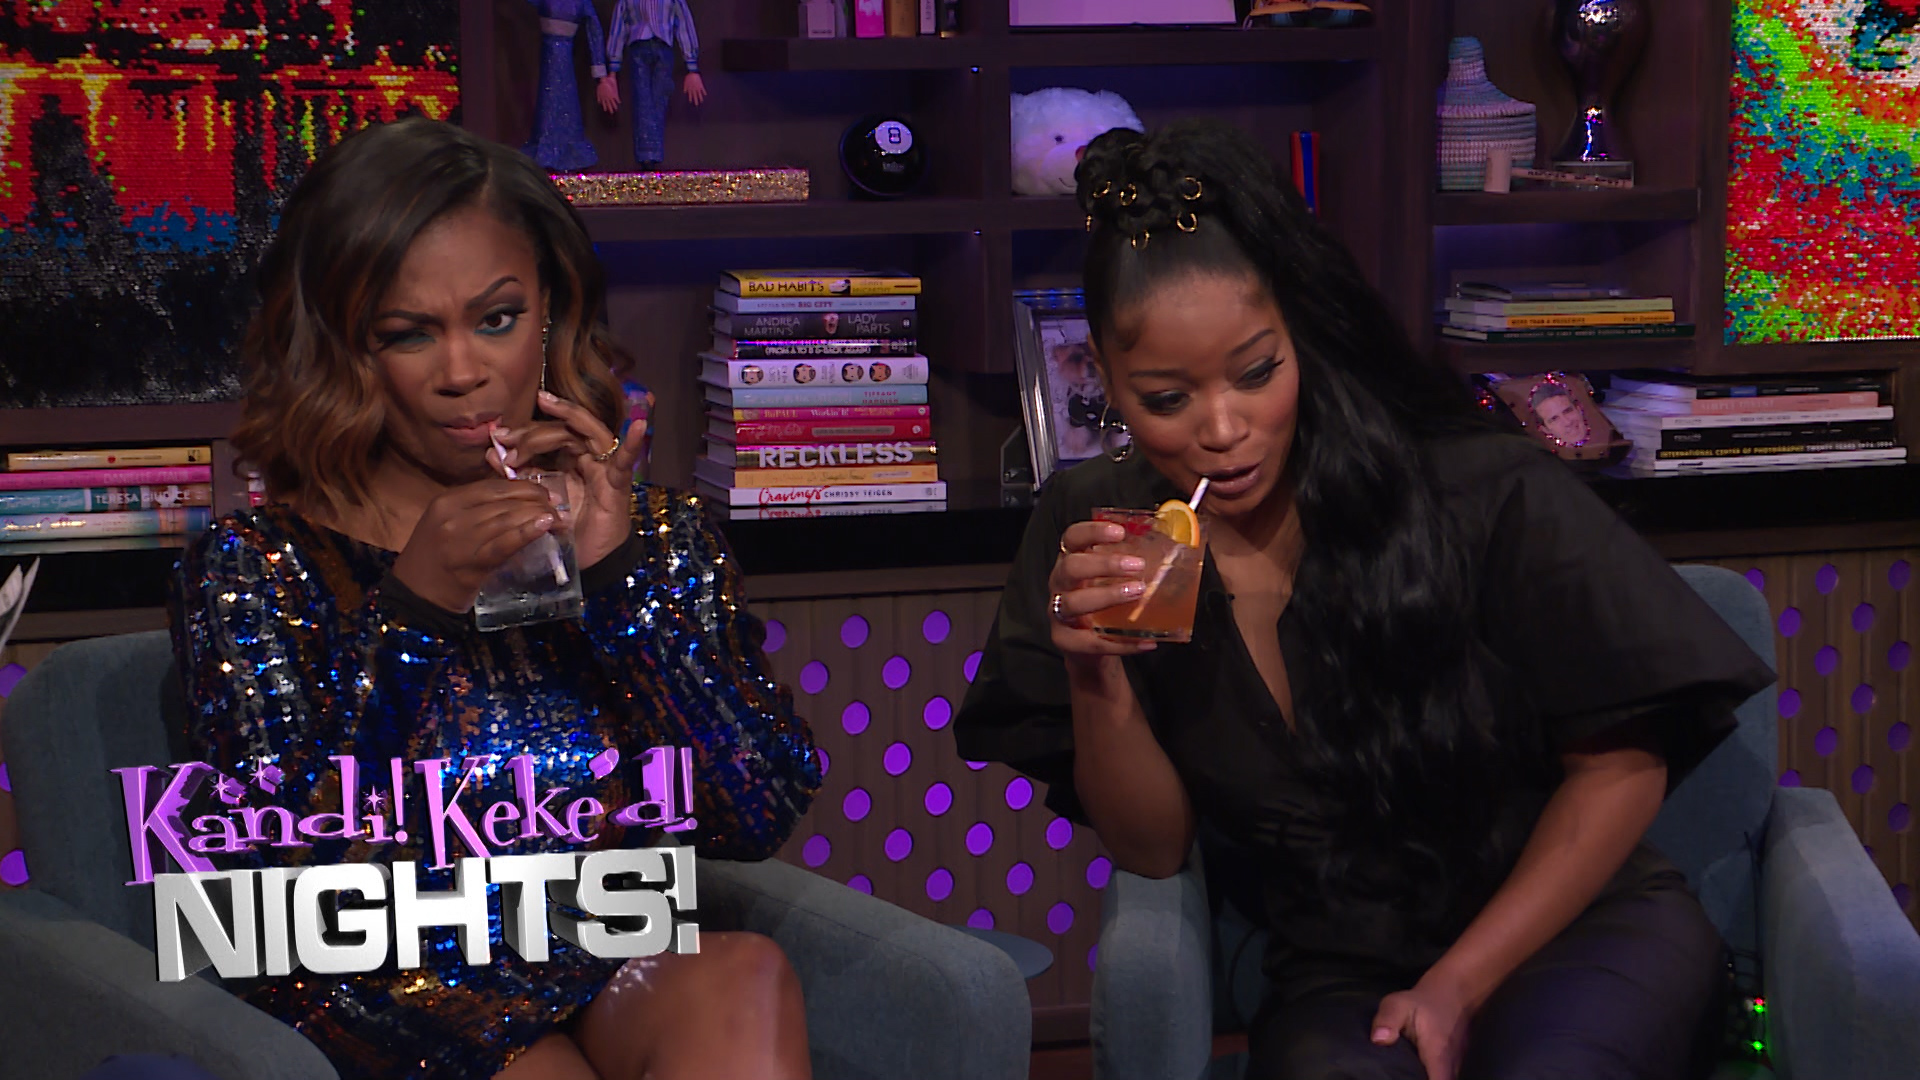 Never Have I Ever with Kandi Burruss and Keke Palmer